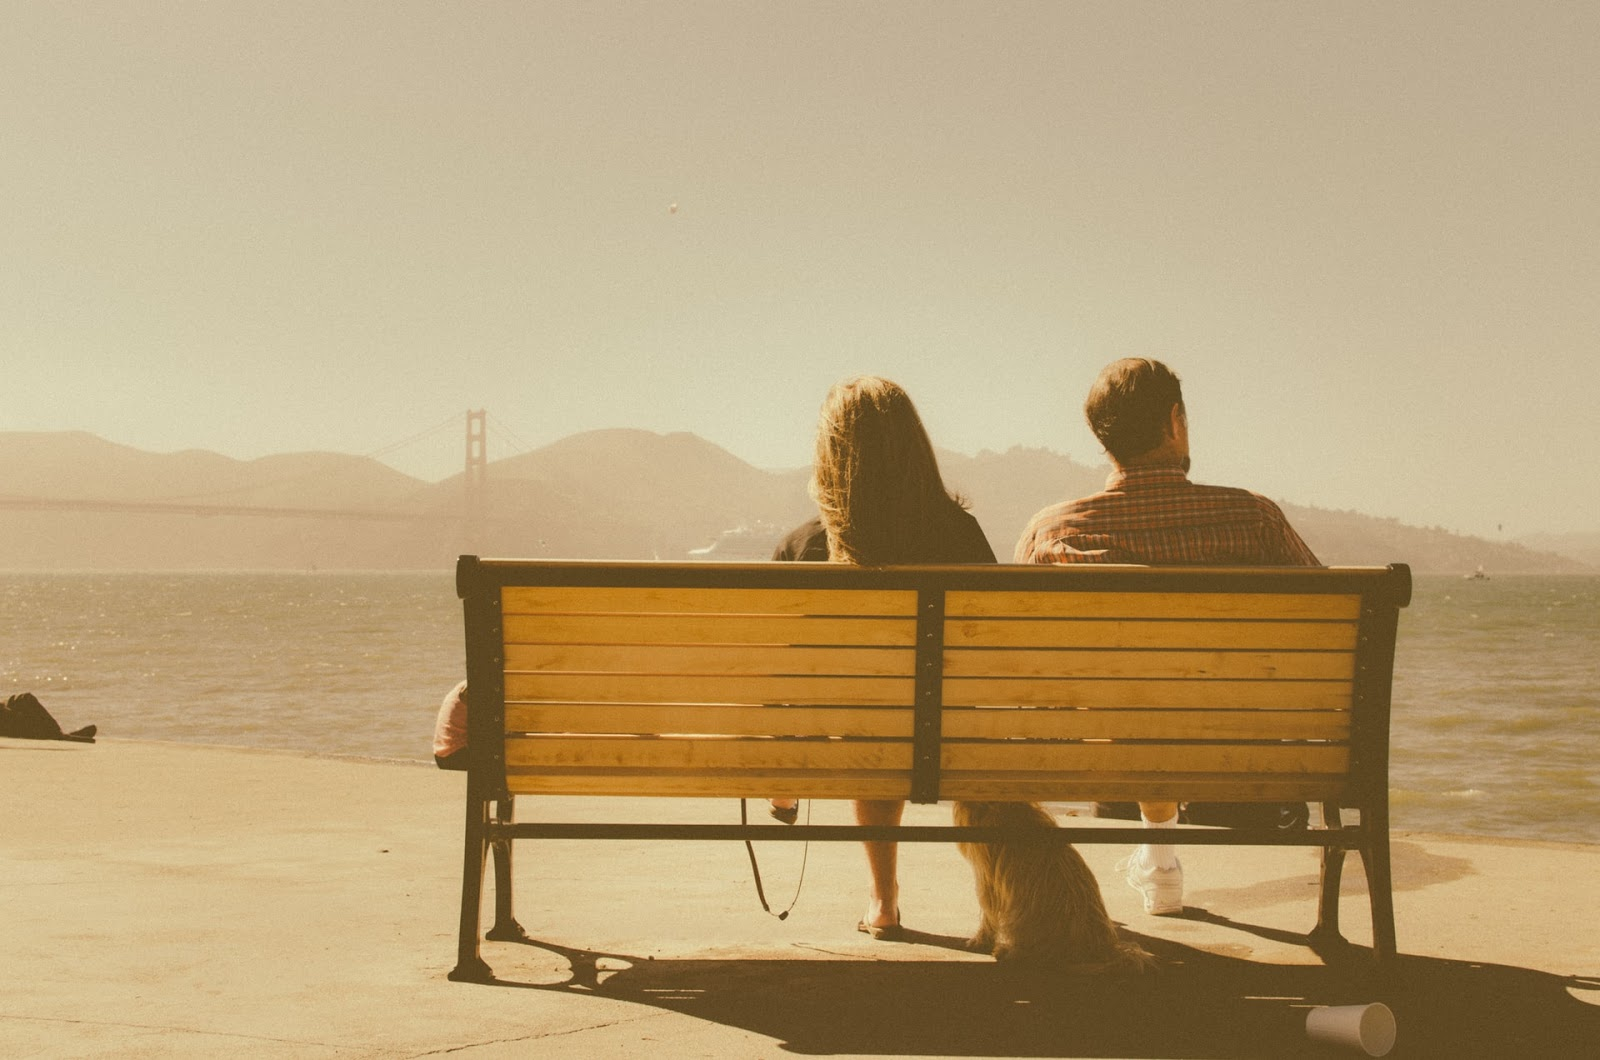 A couple looking at the Golden Gate Bridge.